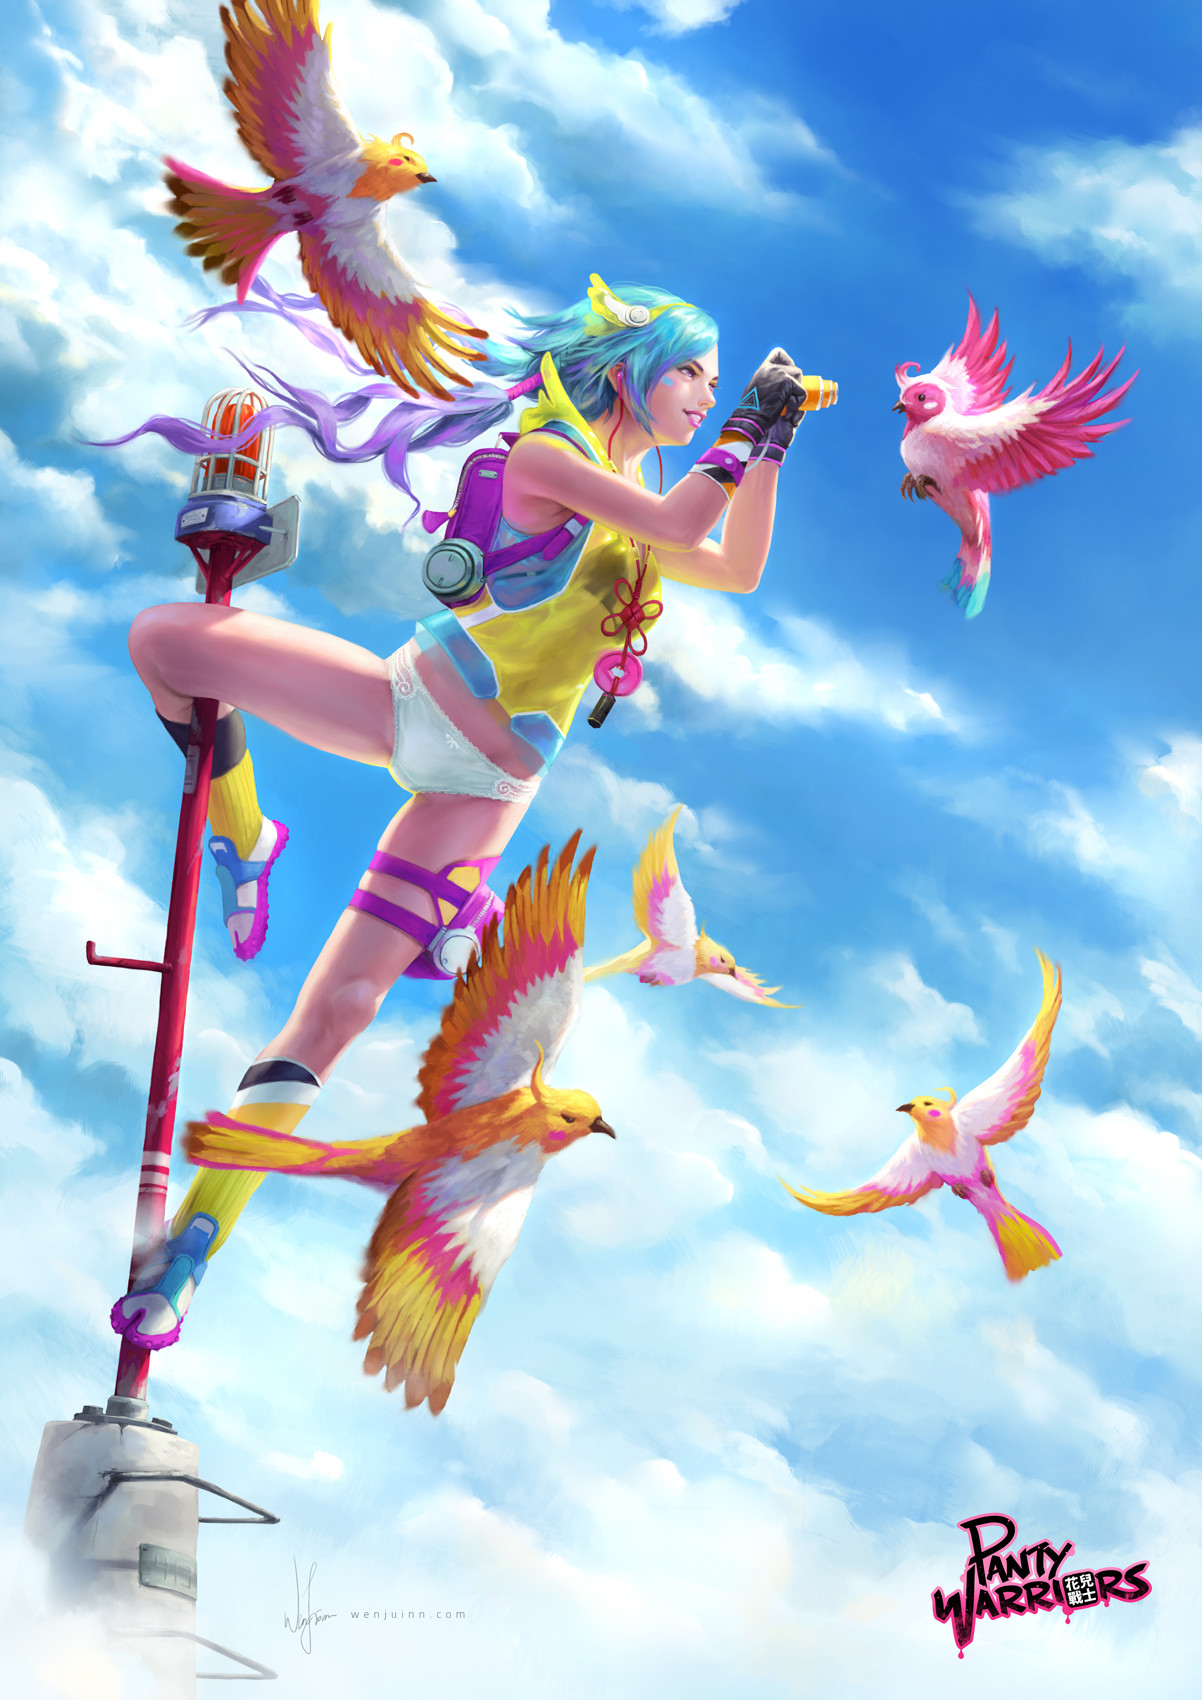 Up and Free~~ With Sky!, Wenjuinn Png_02